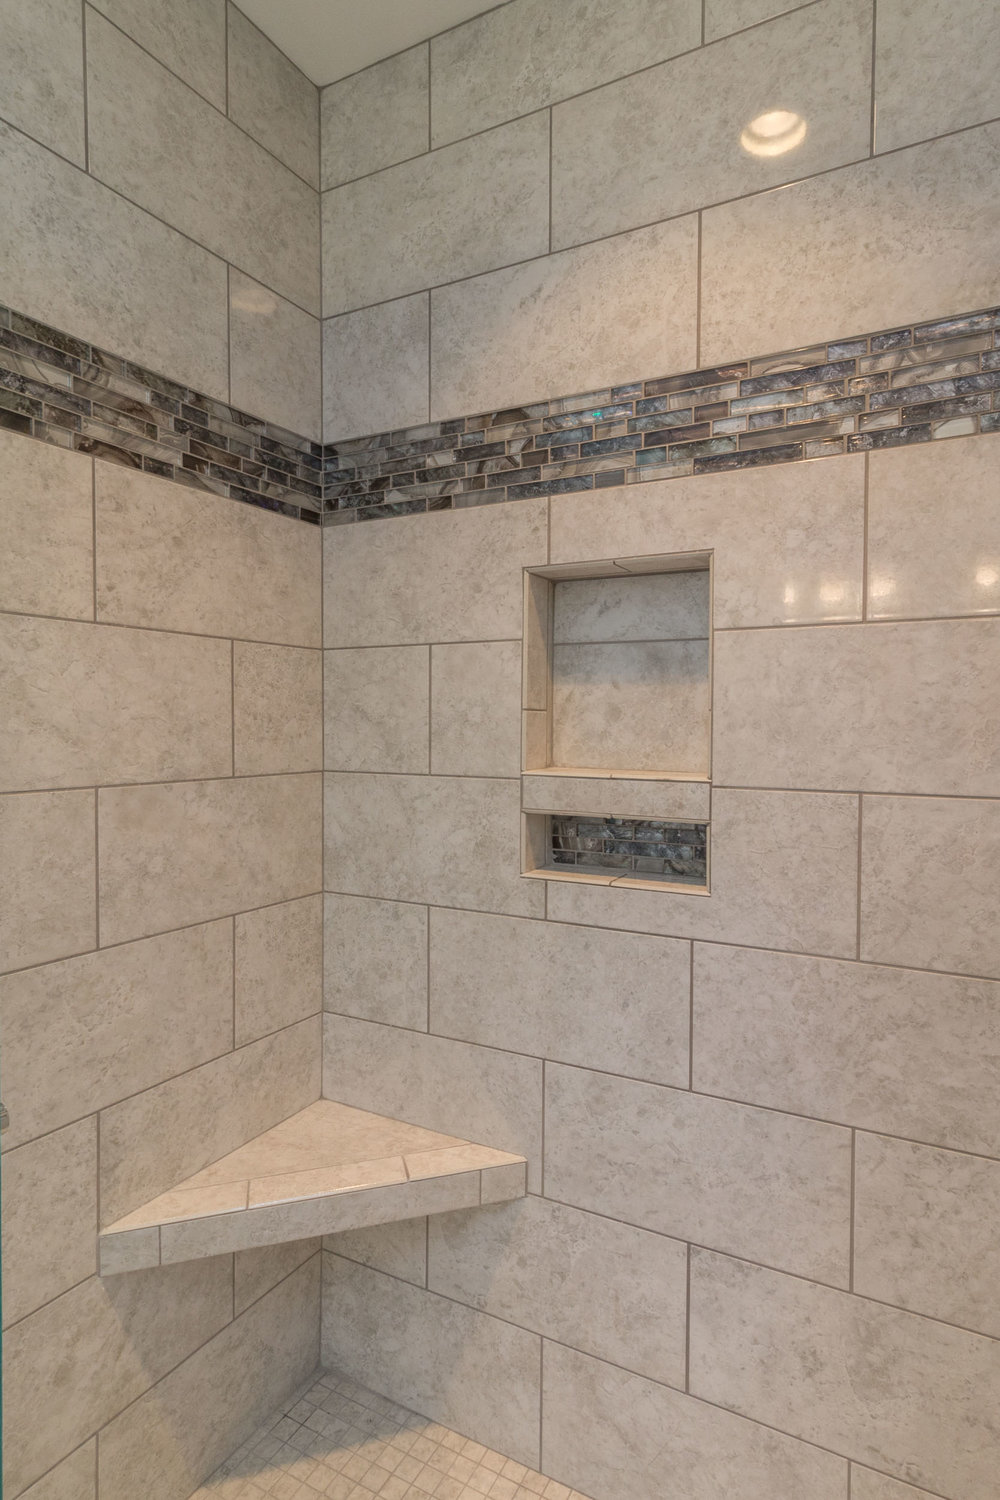 Bathroom Remodeling - A Custom Walk-in Shower